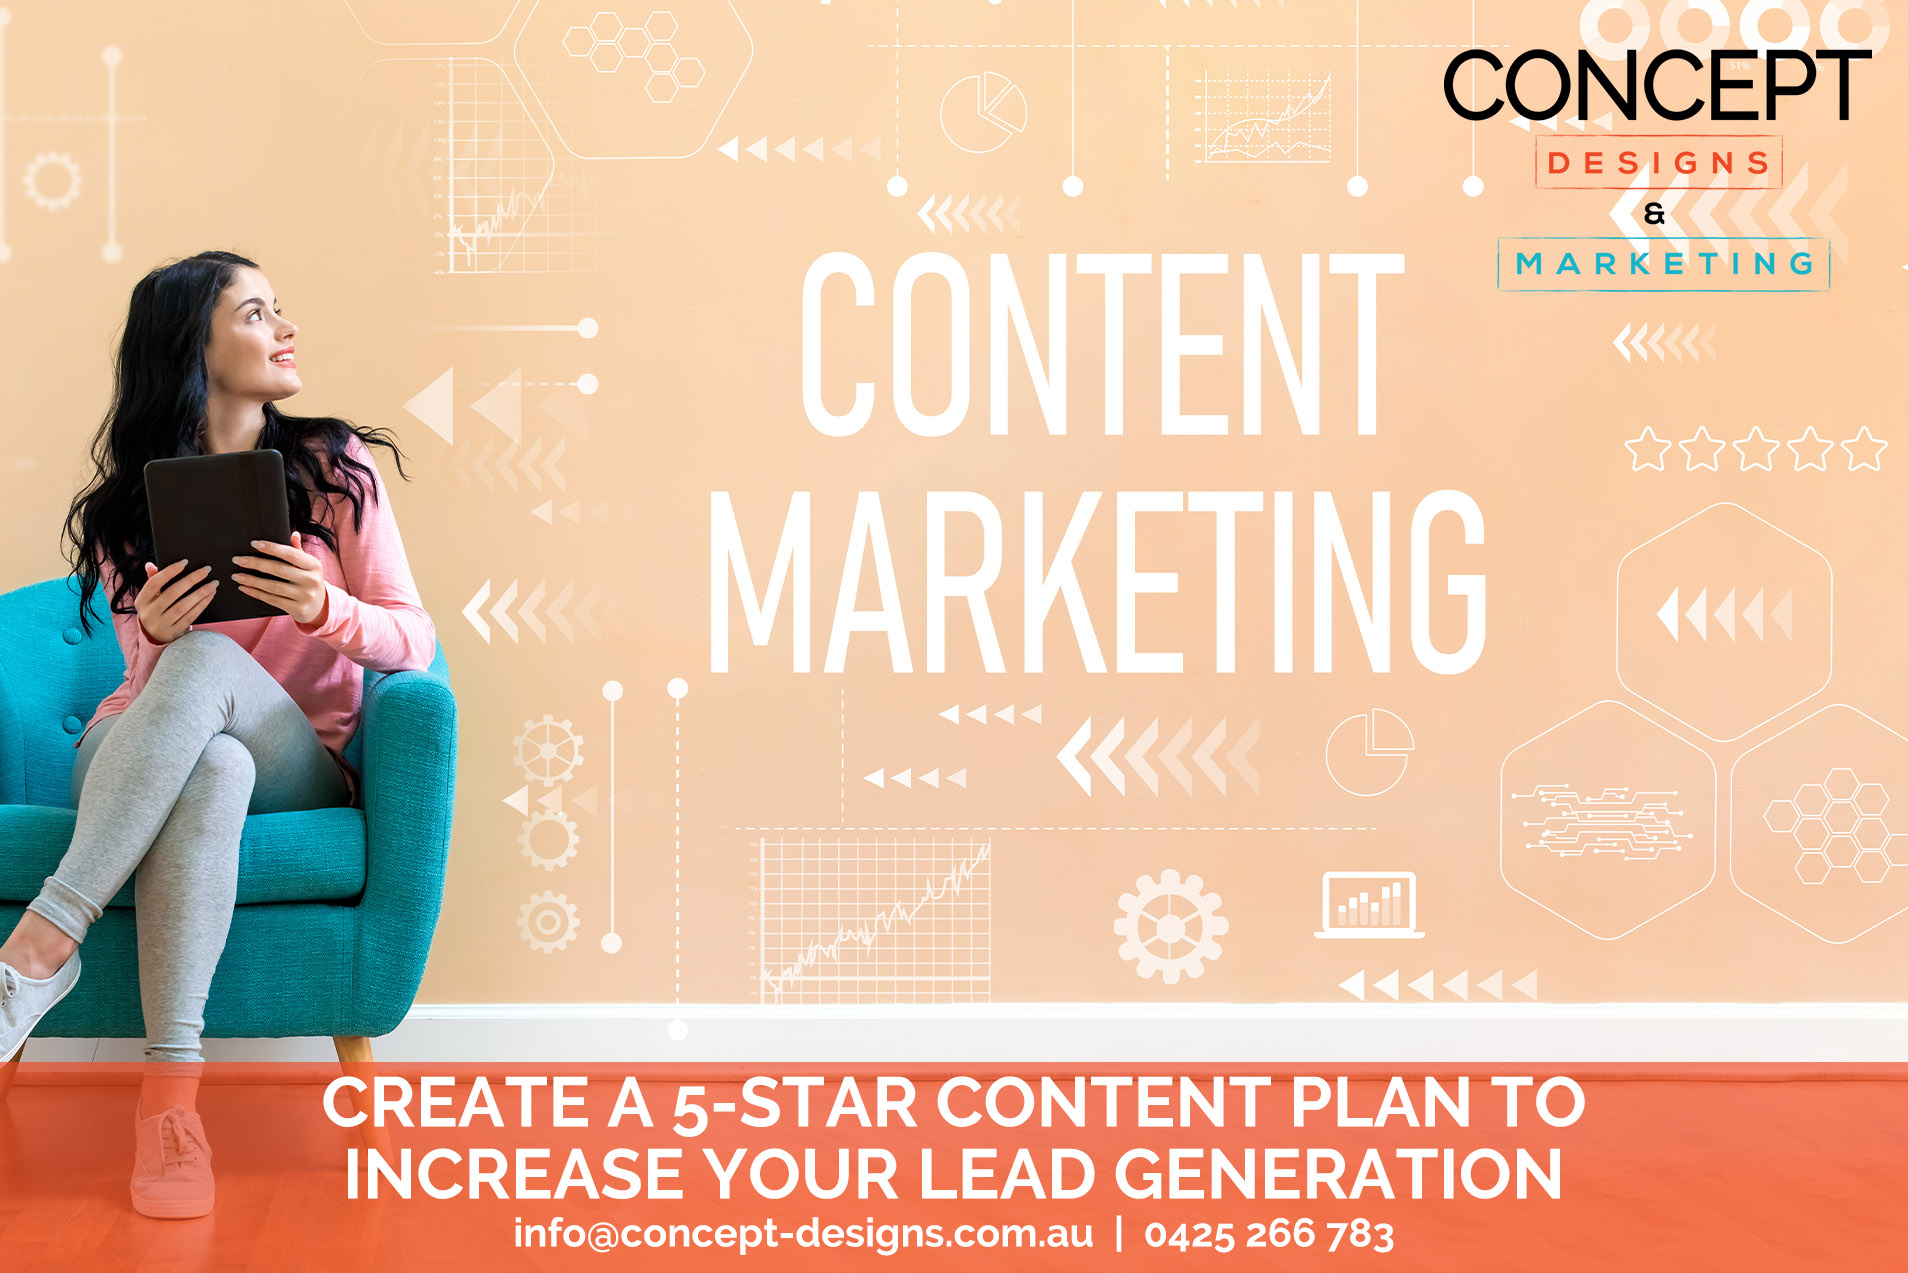 Create A 5‑Star Content Plan To Increase Your Lead Generation